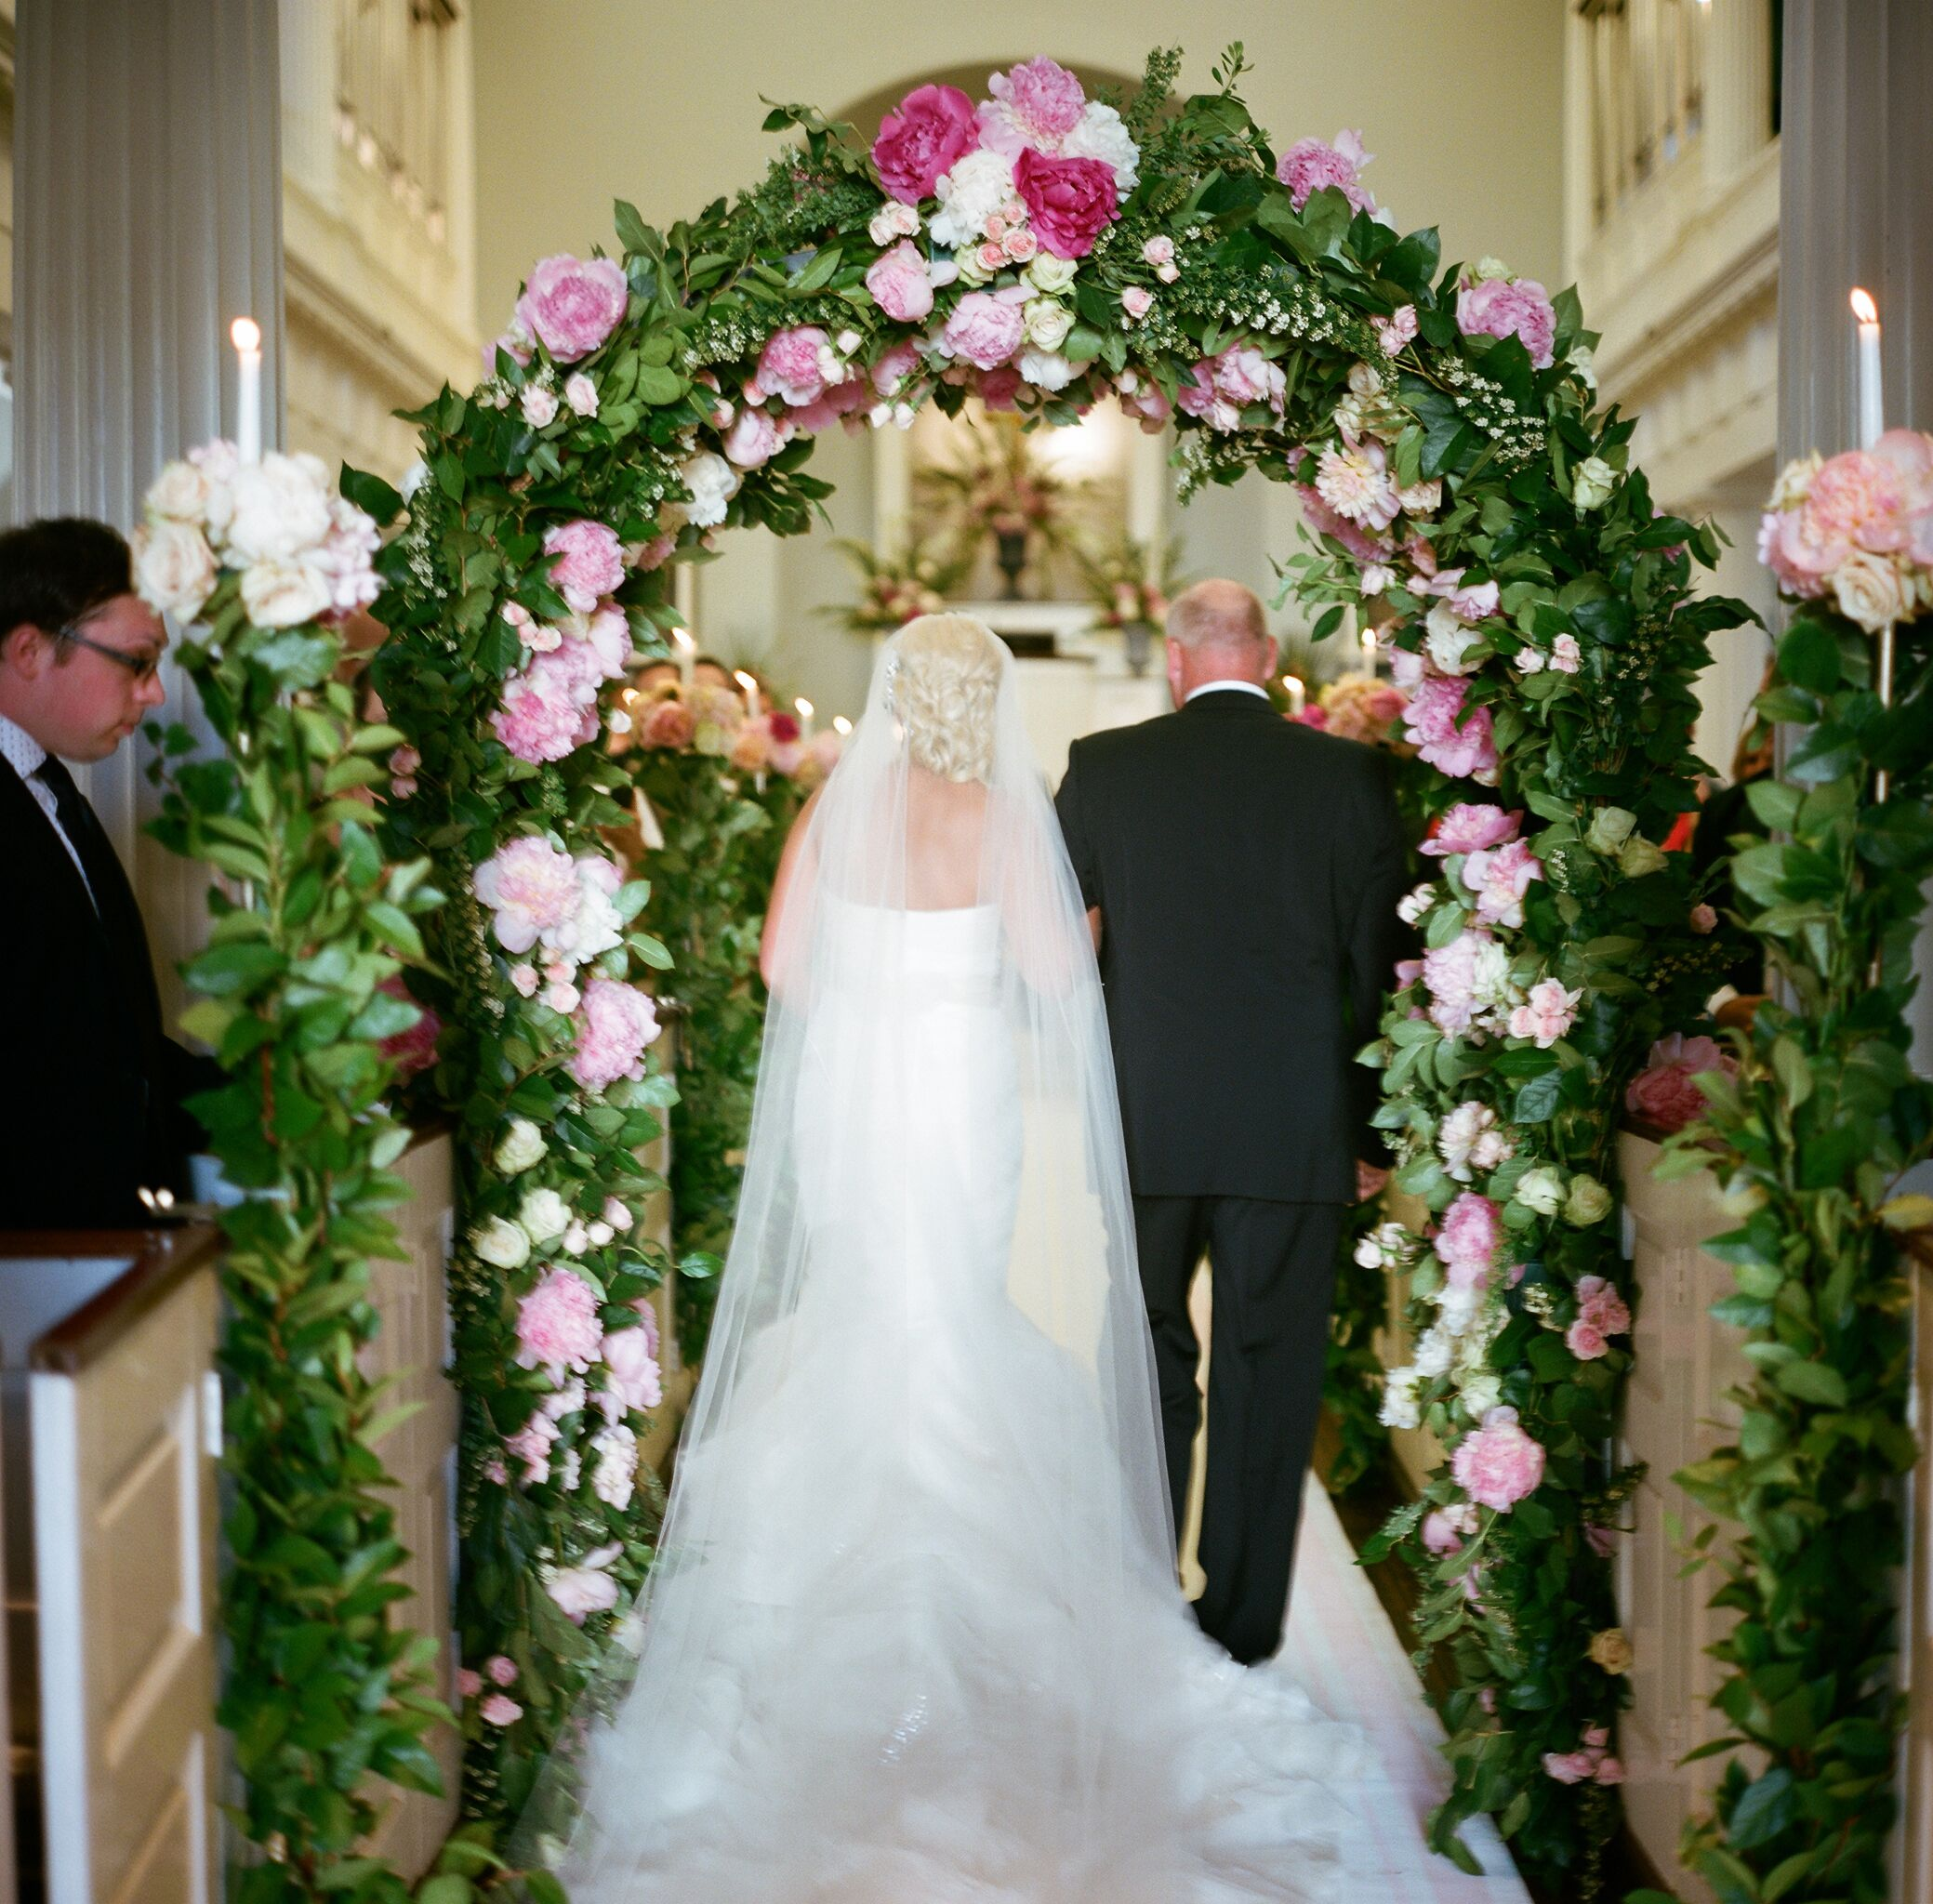 Bride walking with father under ceremony arch of greenery and pink peonies